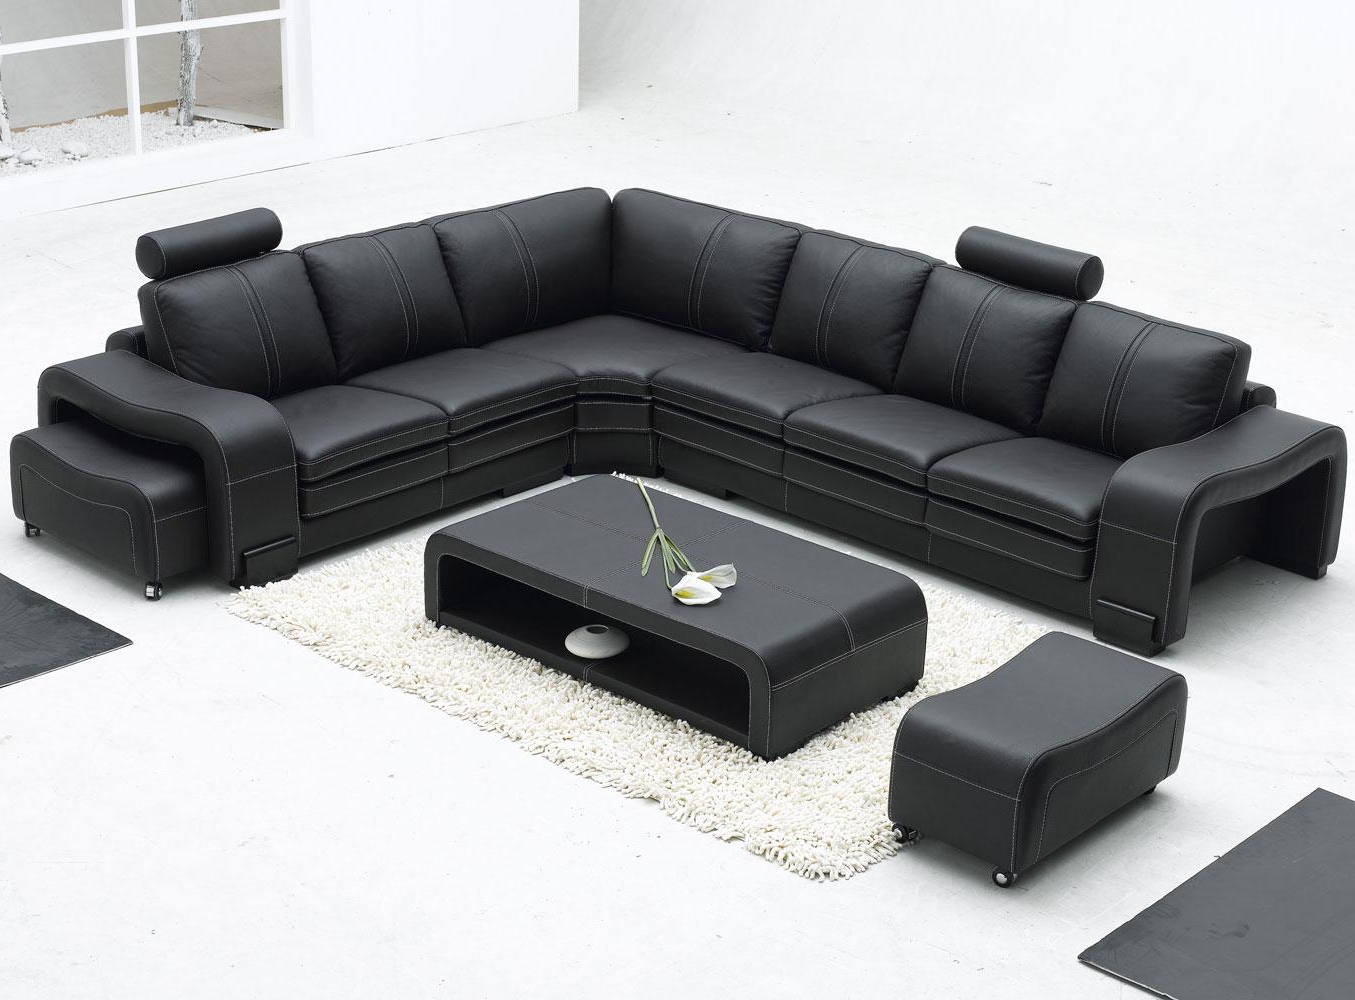 High Quality Leather Sectional Sofas – Home Decor 88 In Famous Tenny Dark Grey 2 Piece Right Facing Chaise Sectionals With 2 Headrest (View 20 of 20)